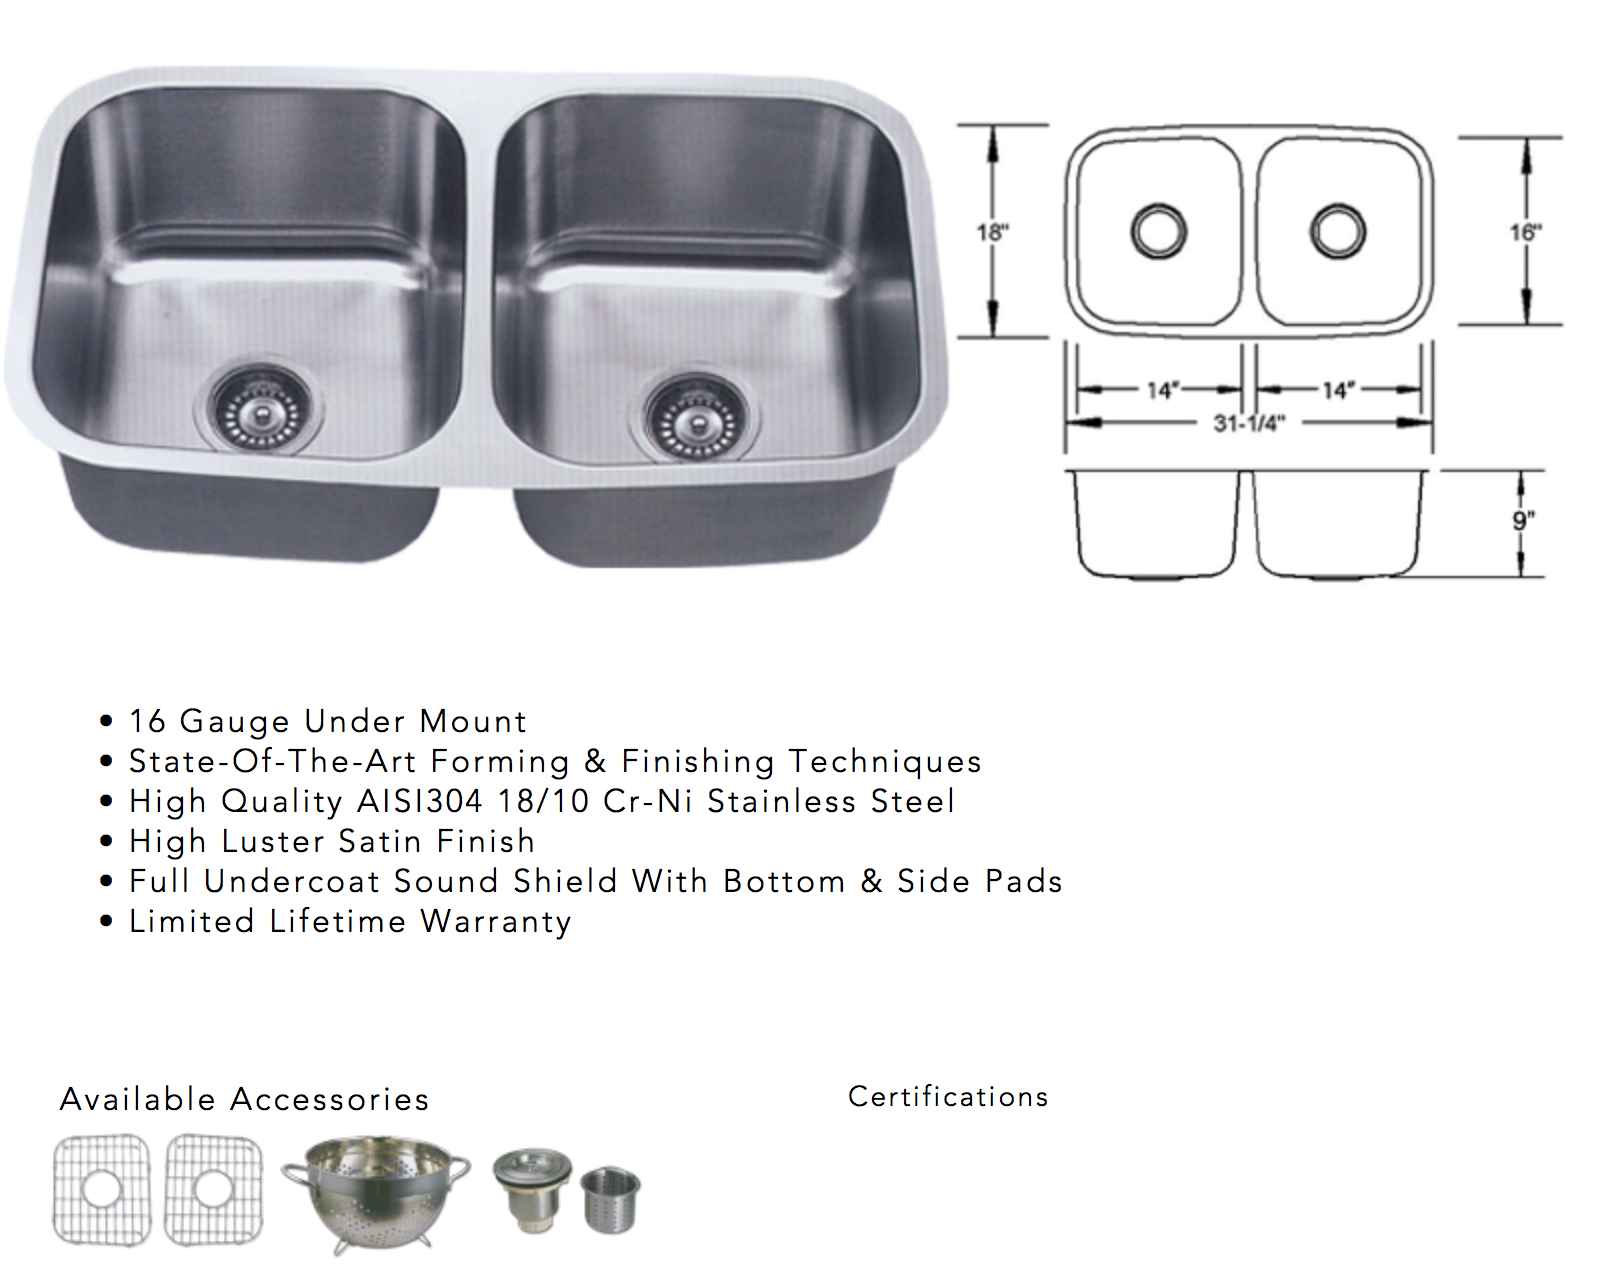 image of sink specifications for undermount quartz